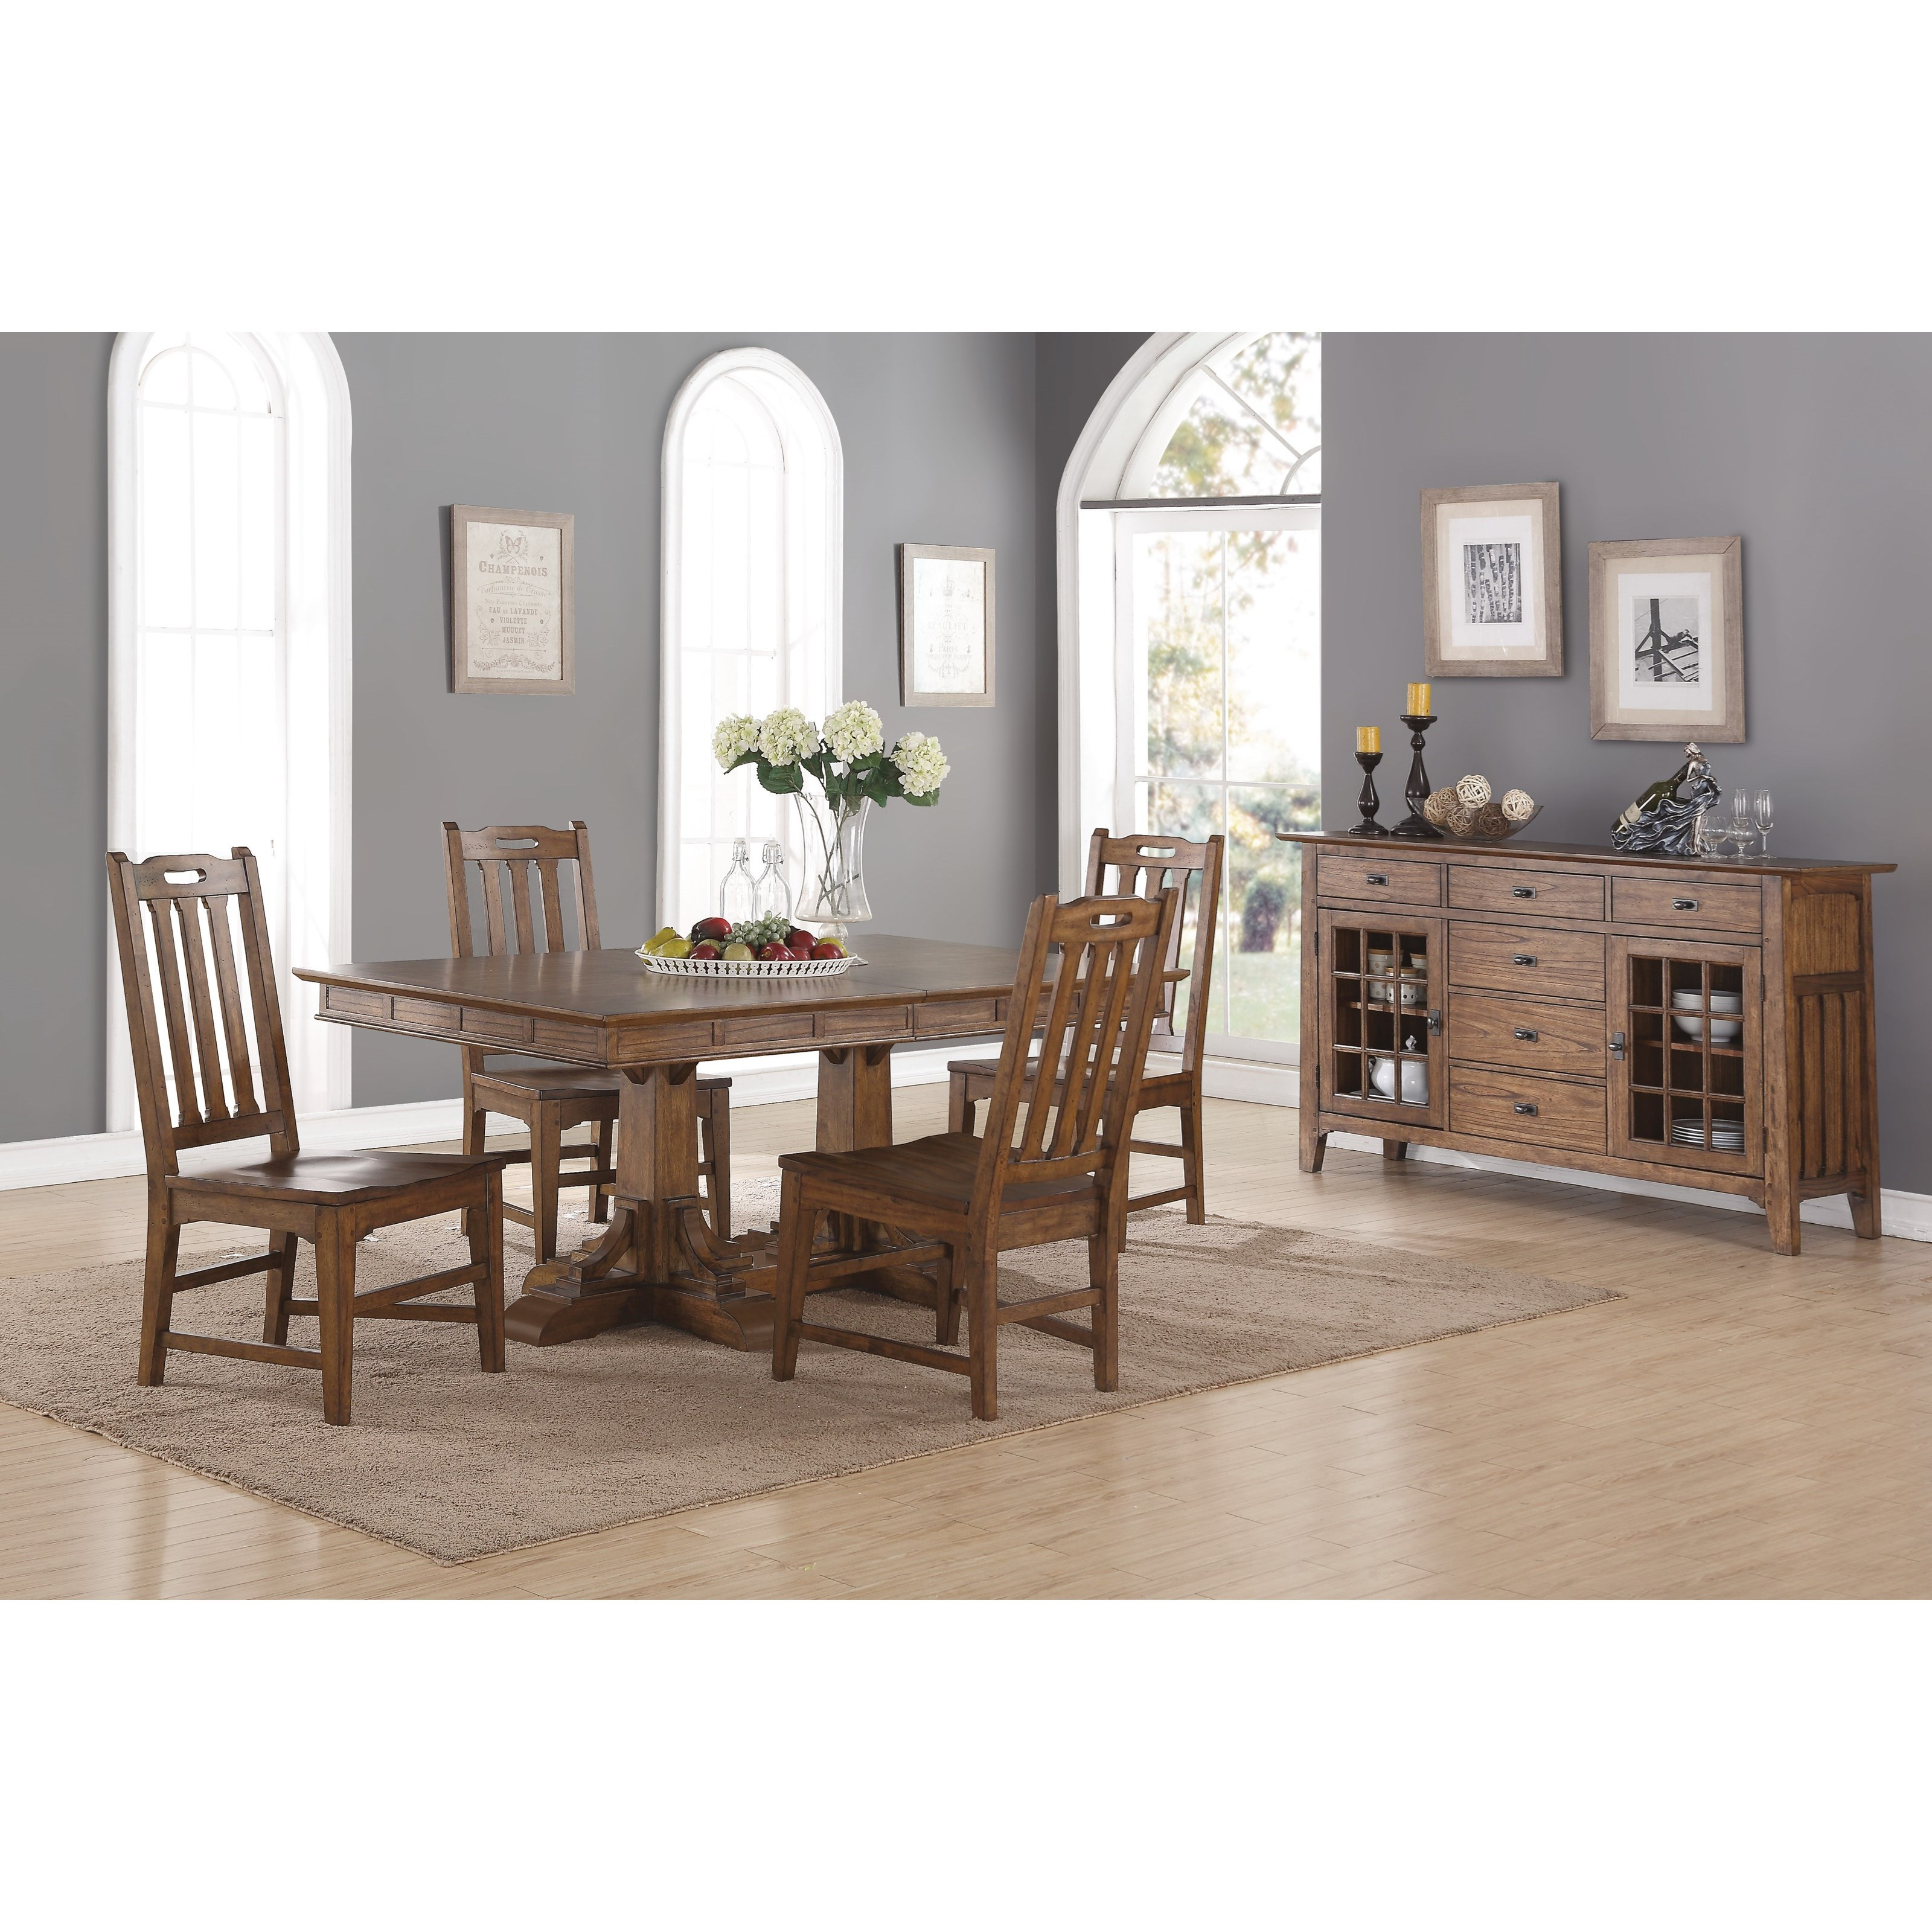 Flexsteel wynwood collection sonora casual dining room for Informal dining